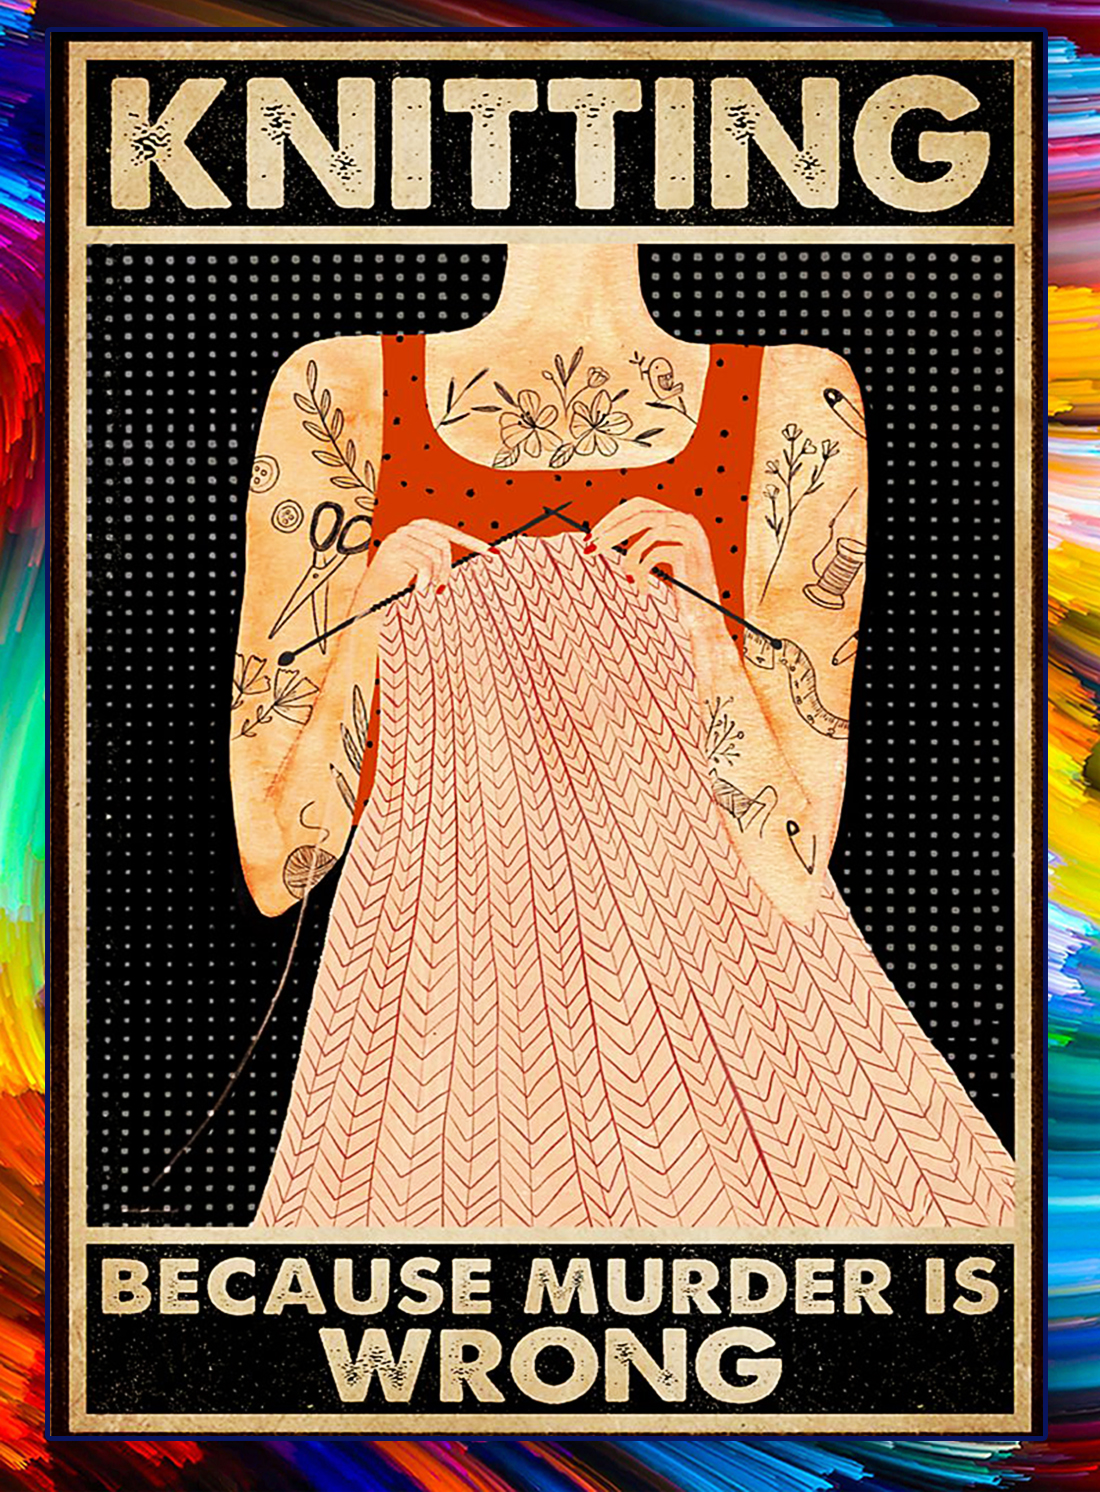 Tattoo girl knitting because murder is wrong poster - A4